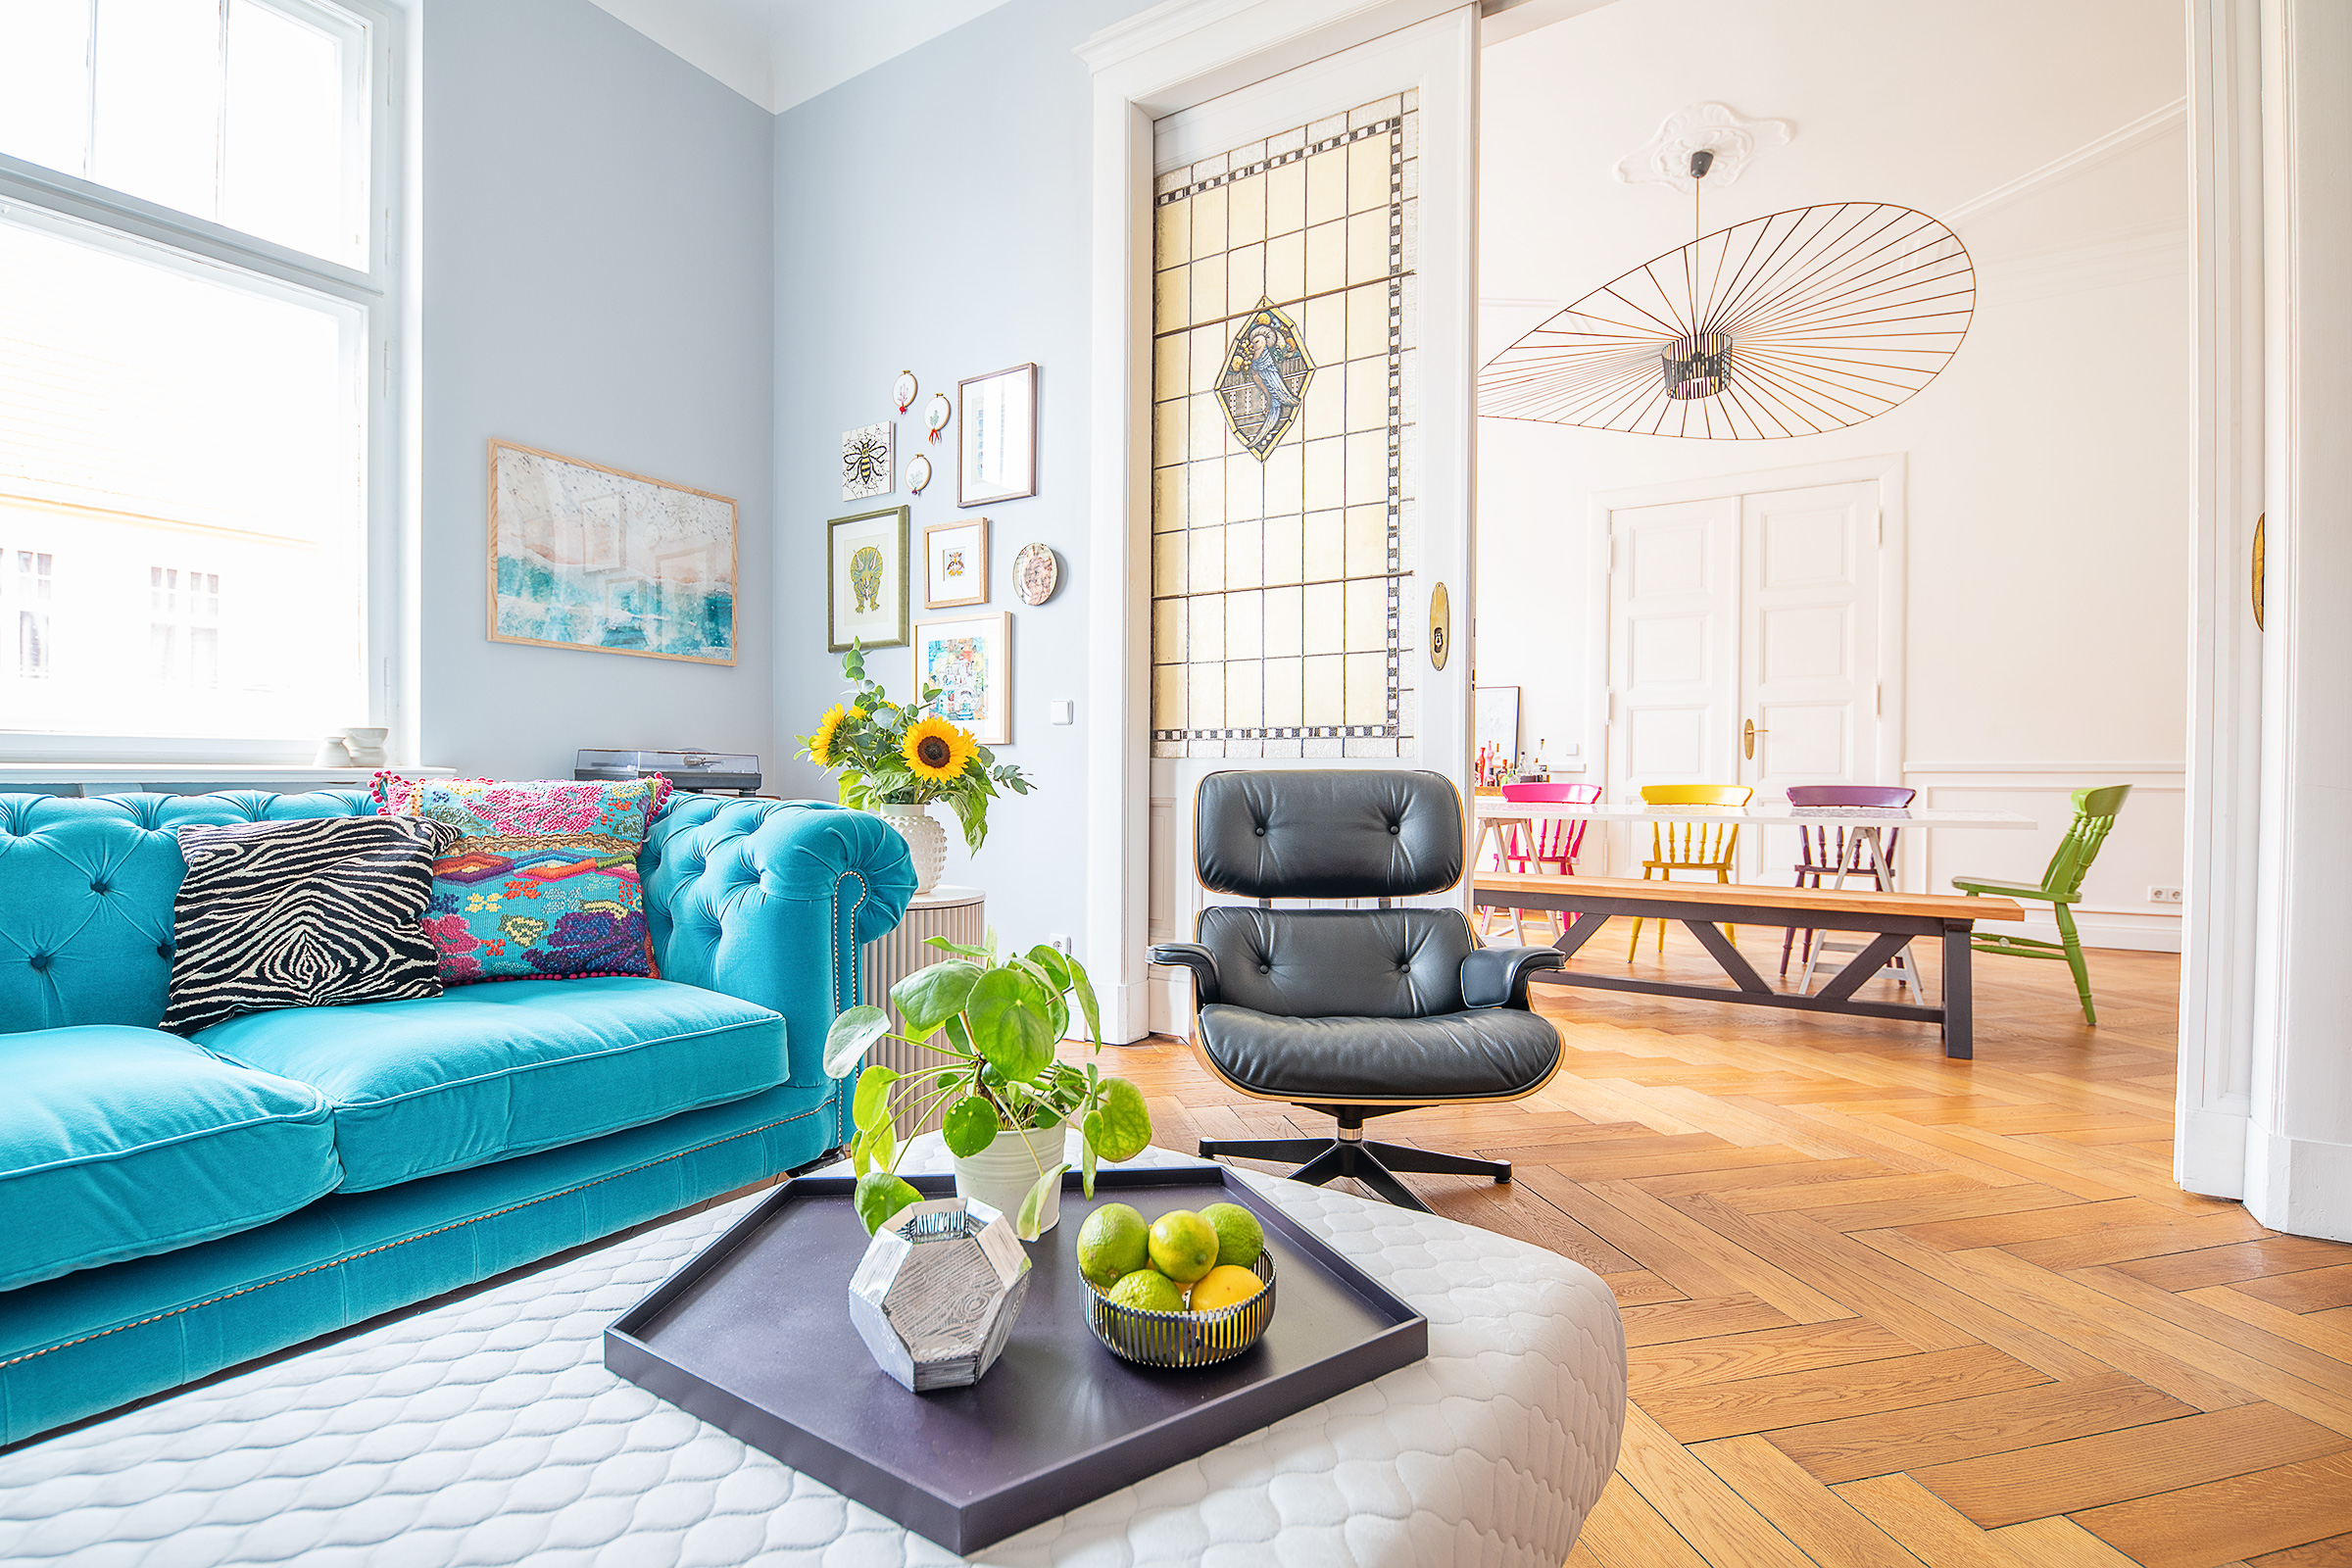 Living Room With Turquoise Chesterfield, Ottoman and Ribbed Sidetable